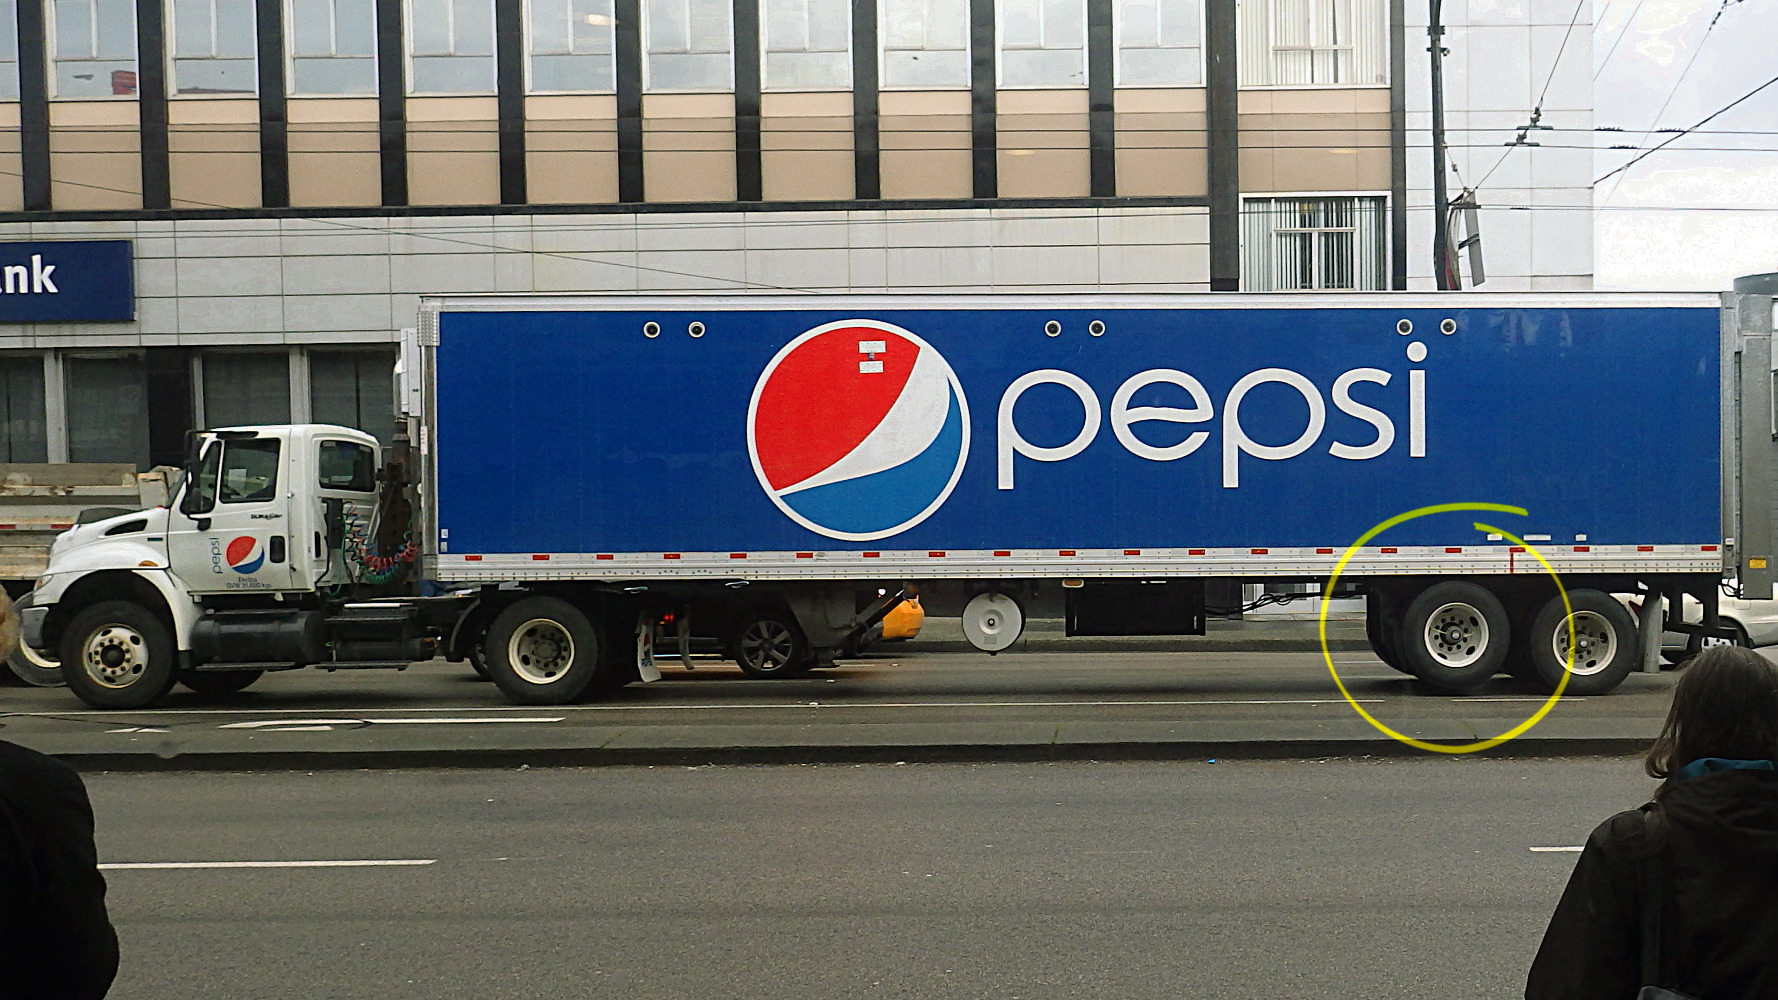 Saw a Pepsi delivery truck doing a wheelie | sqwabb